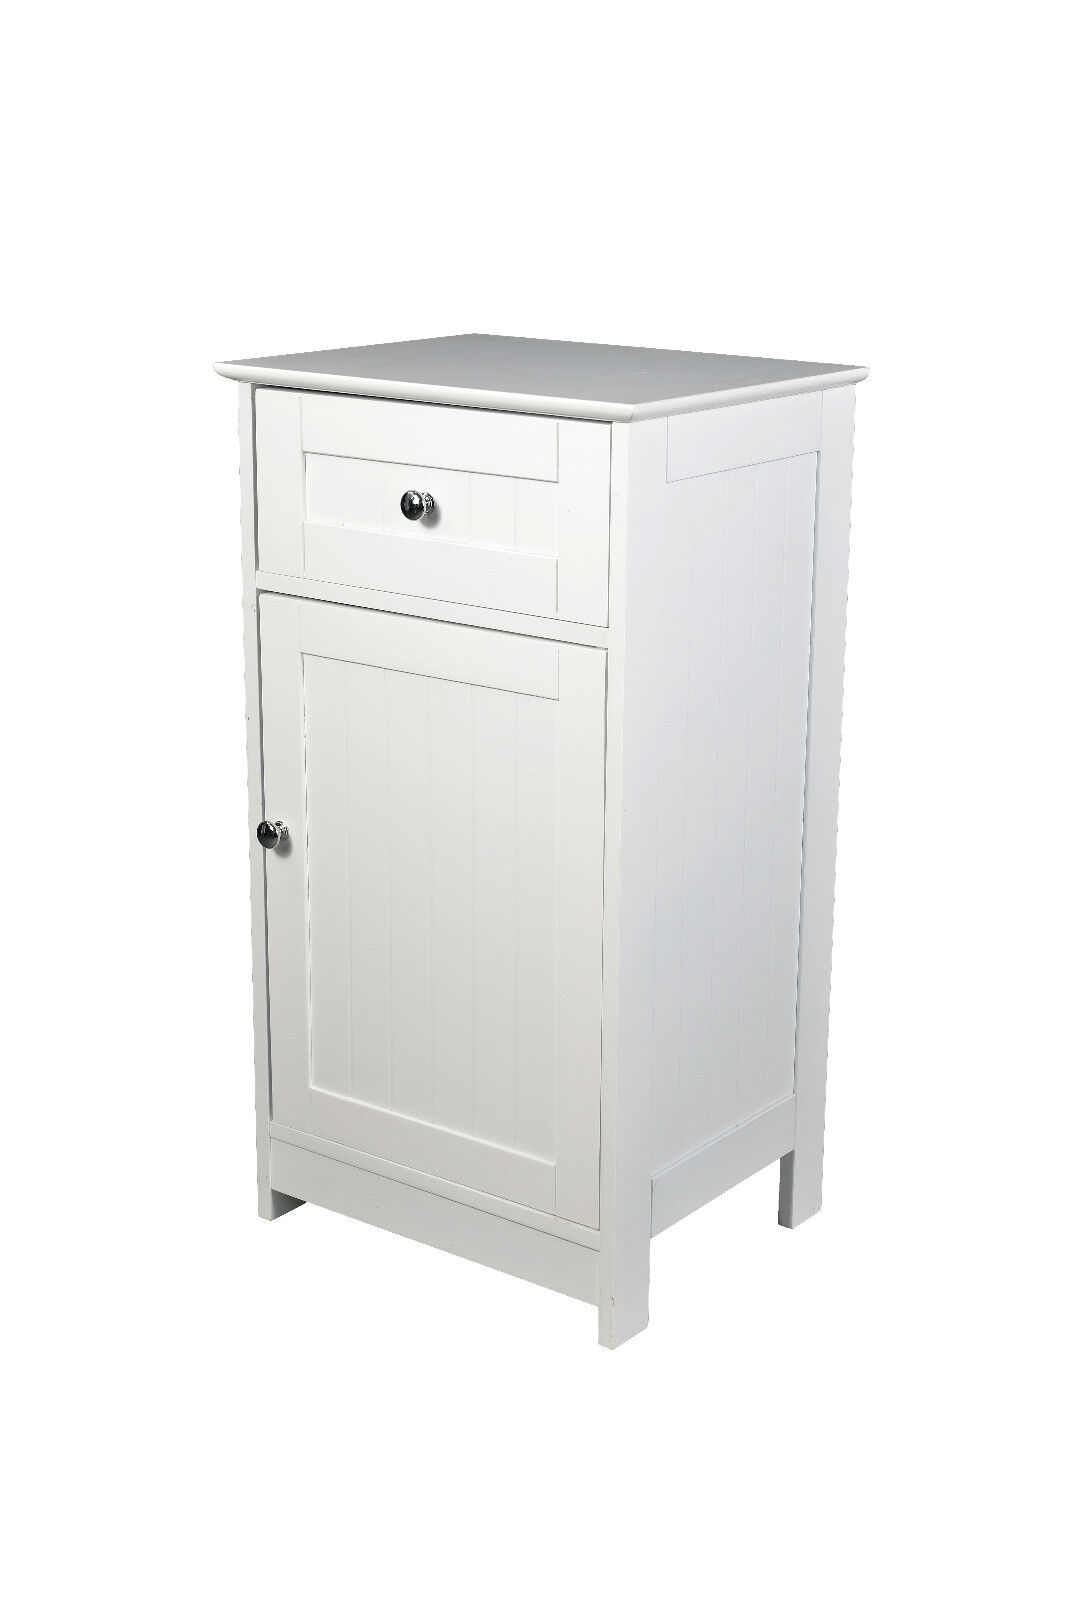 large image. Malmo 1 Door 1 Drawer Low Storage Unit  sc 1 st  eBay & Malmo White Painted Low Storage Unit / Modern Cabinet / Bathroom ...